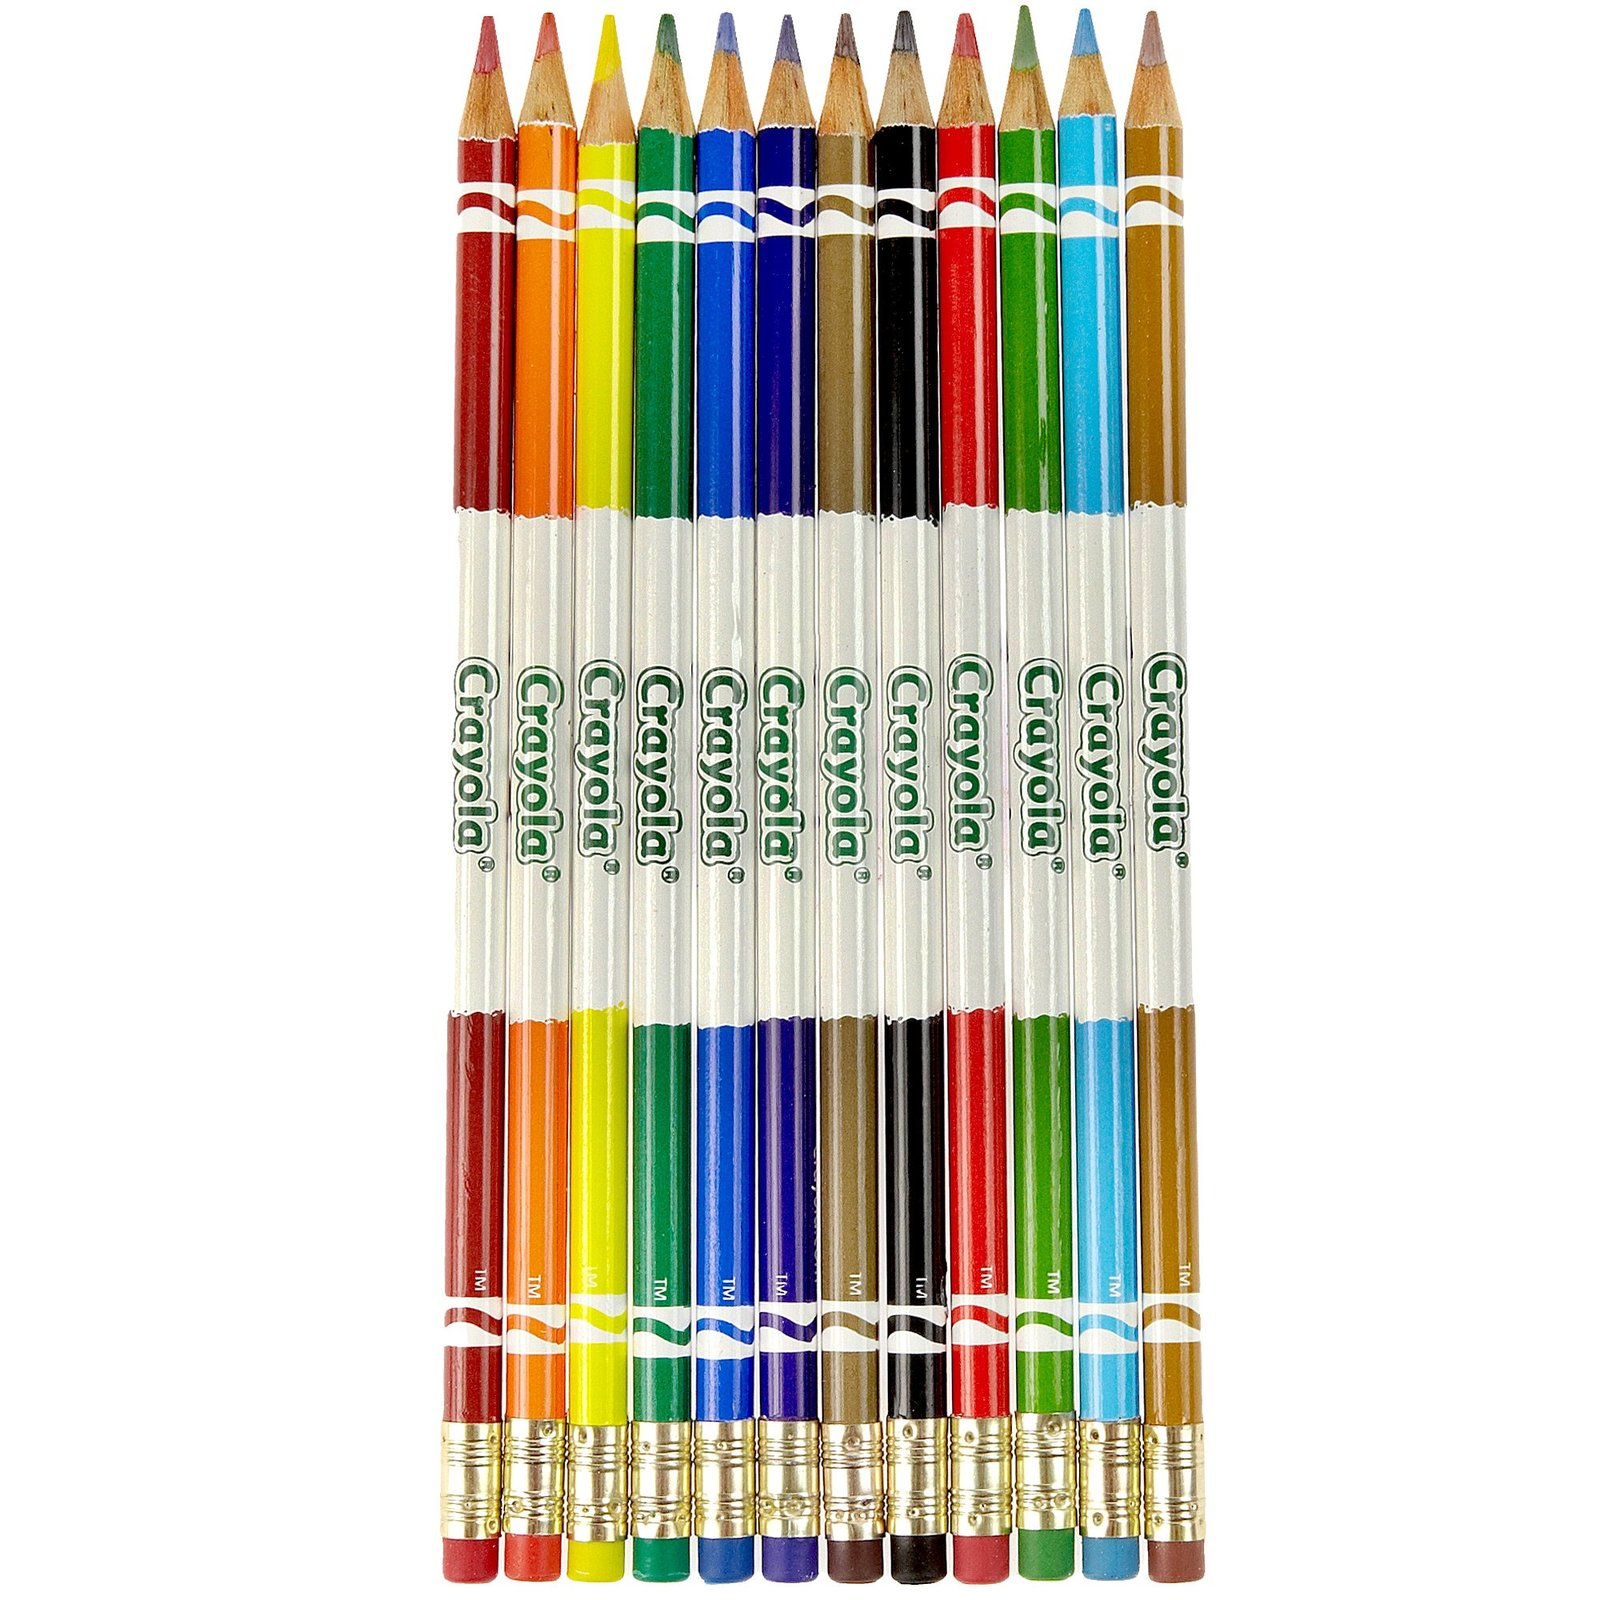 Made with thick, soft leads that won't break easily, the pencils create brightly colored lines that are perfect for school projects and creating detailed artwork.